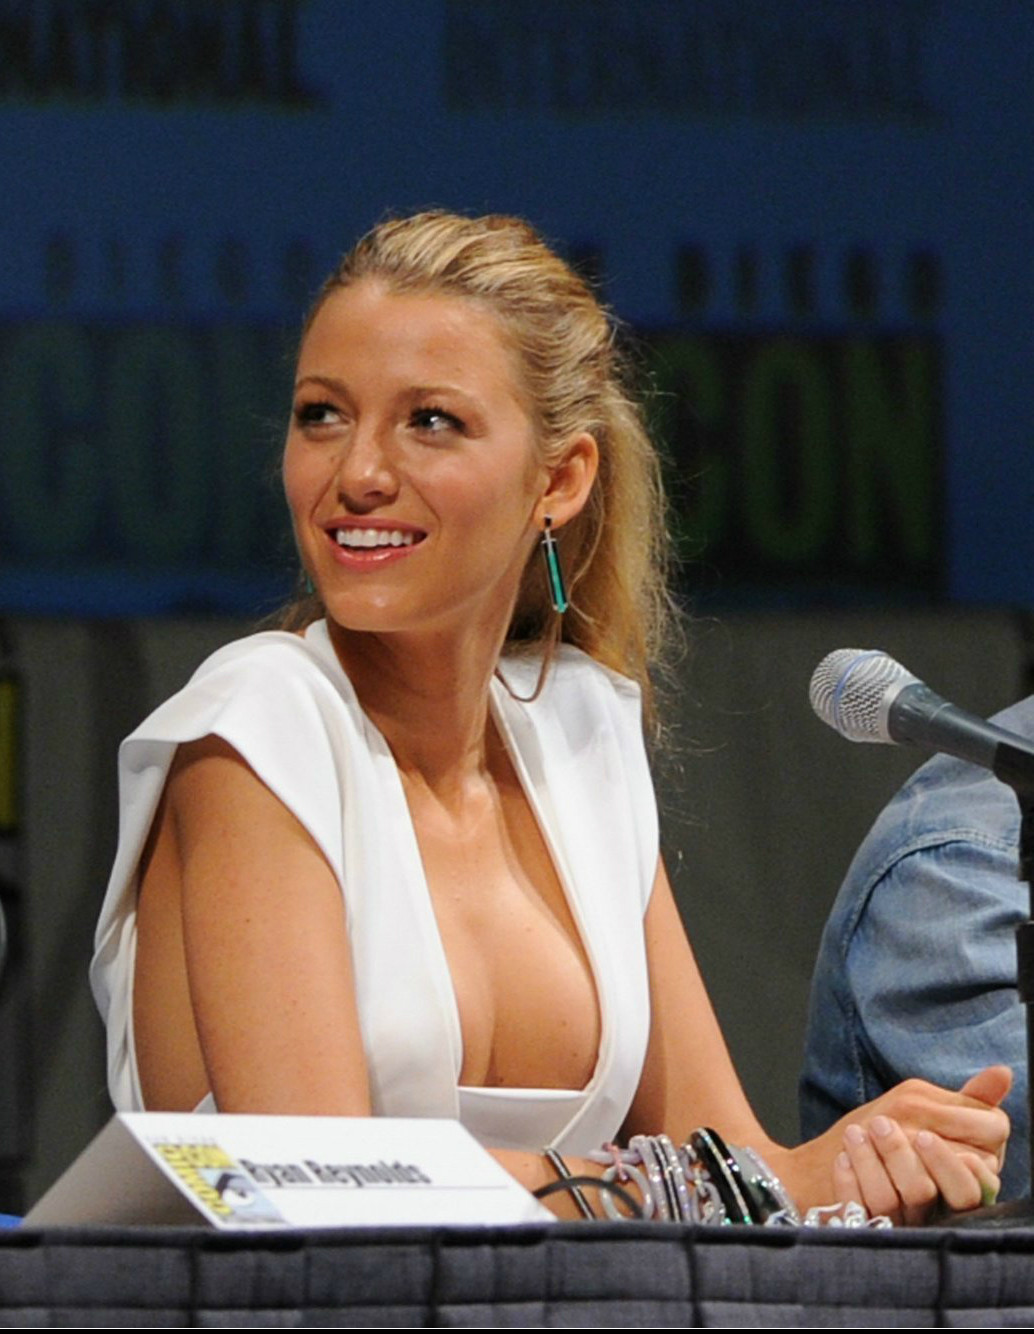 most beautiful woman in the world Blake lively